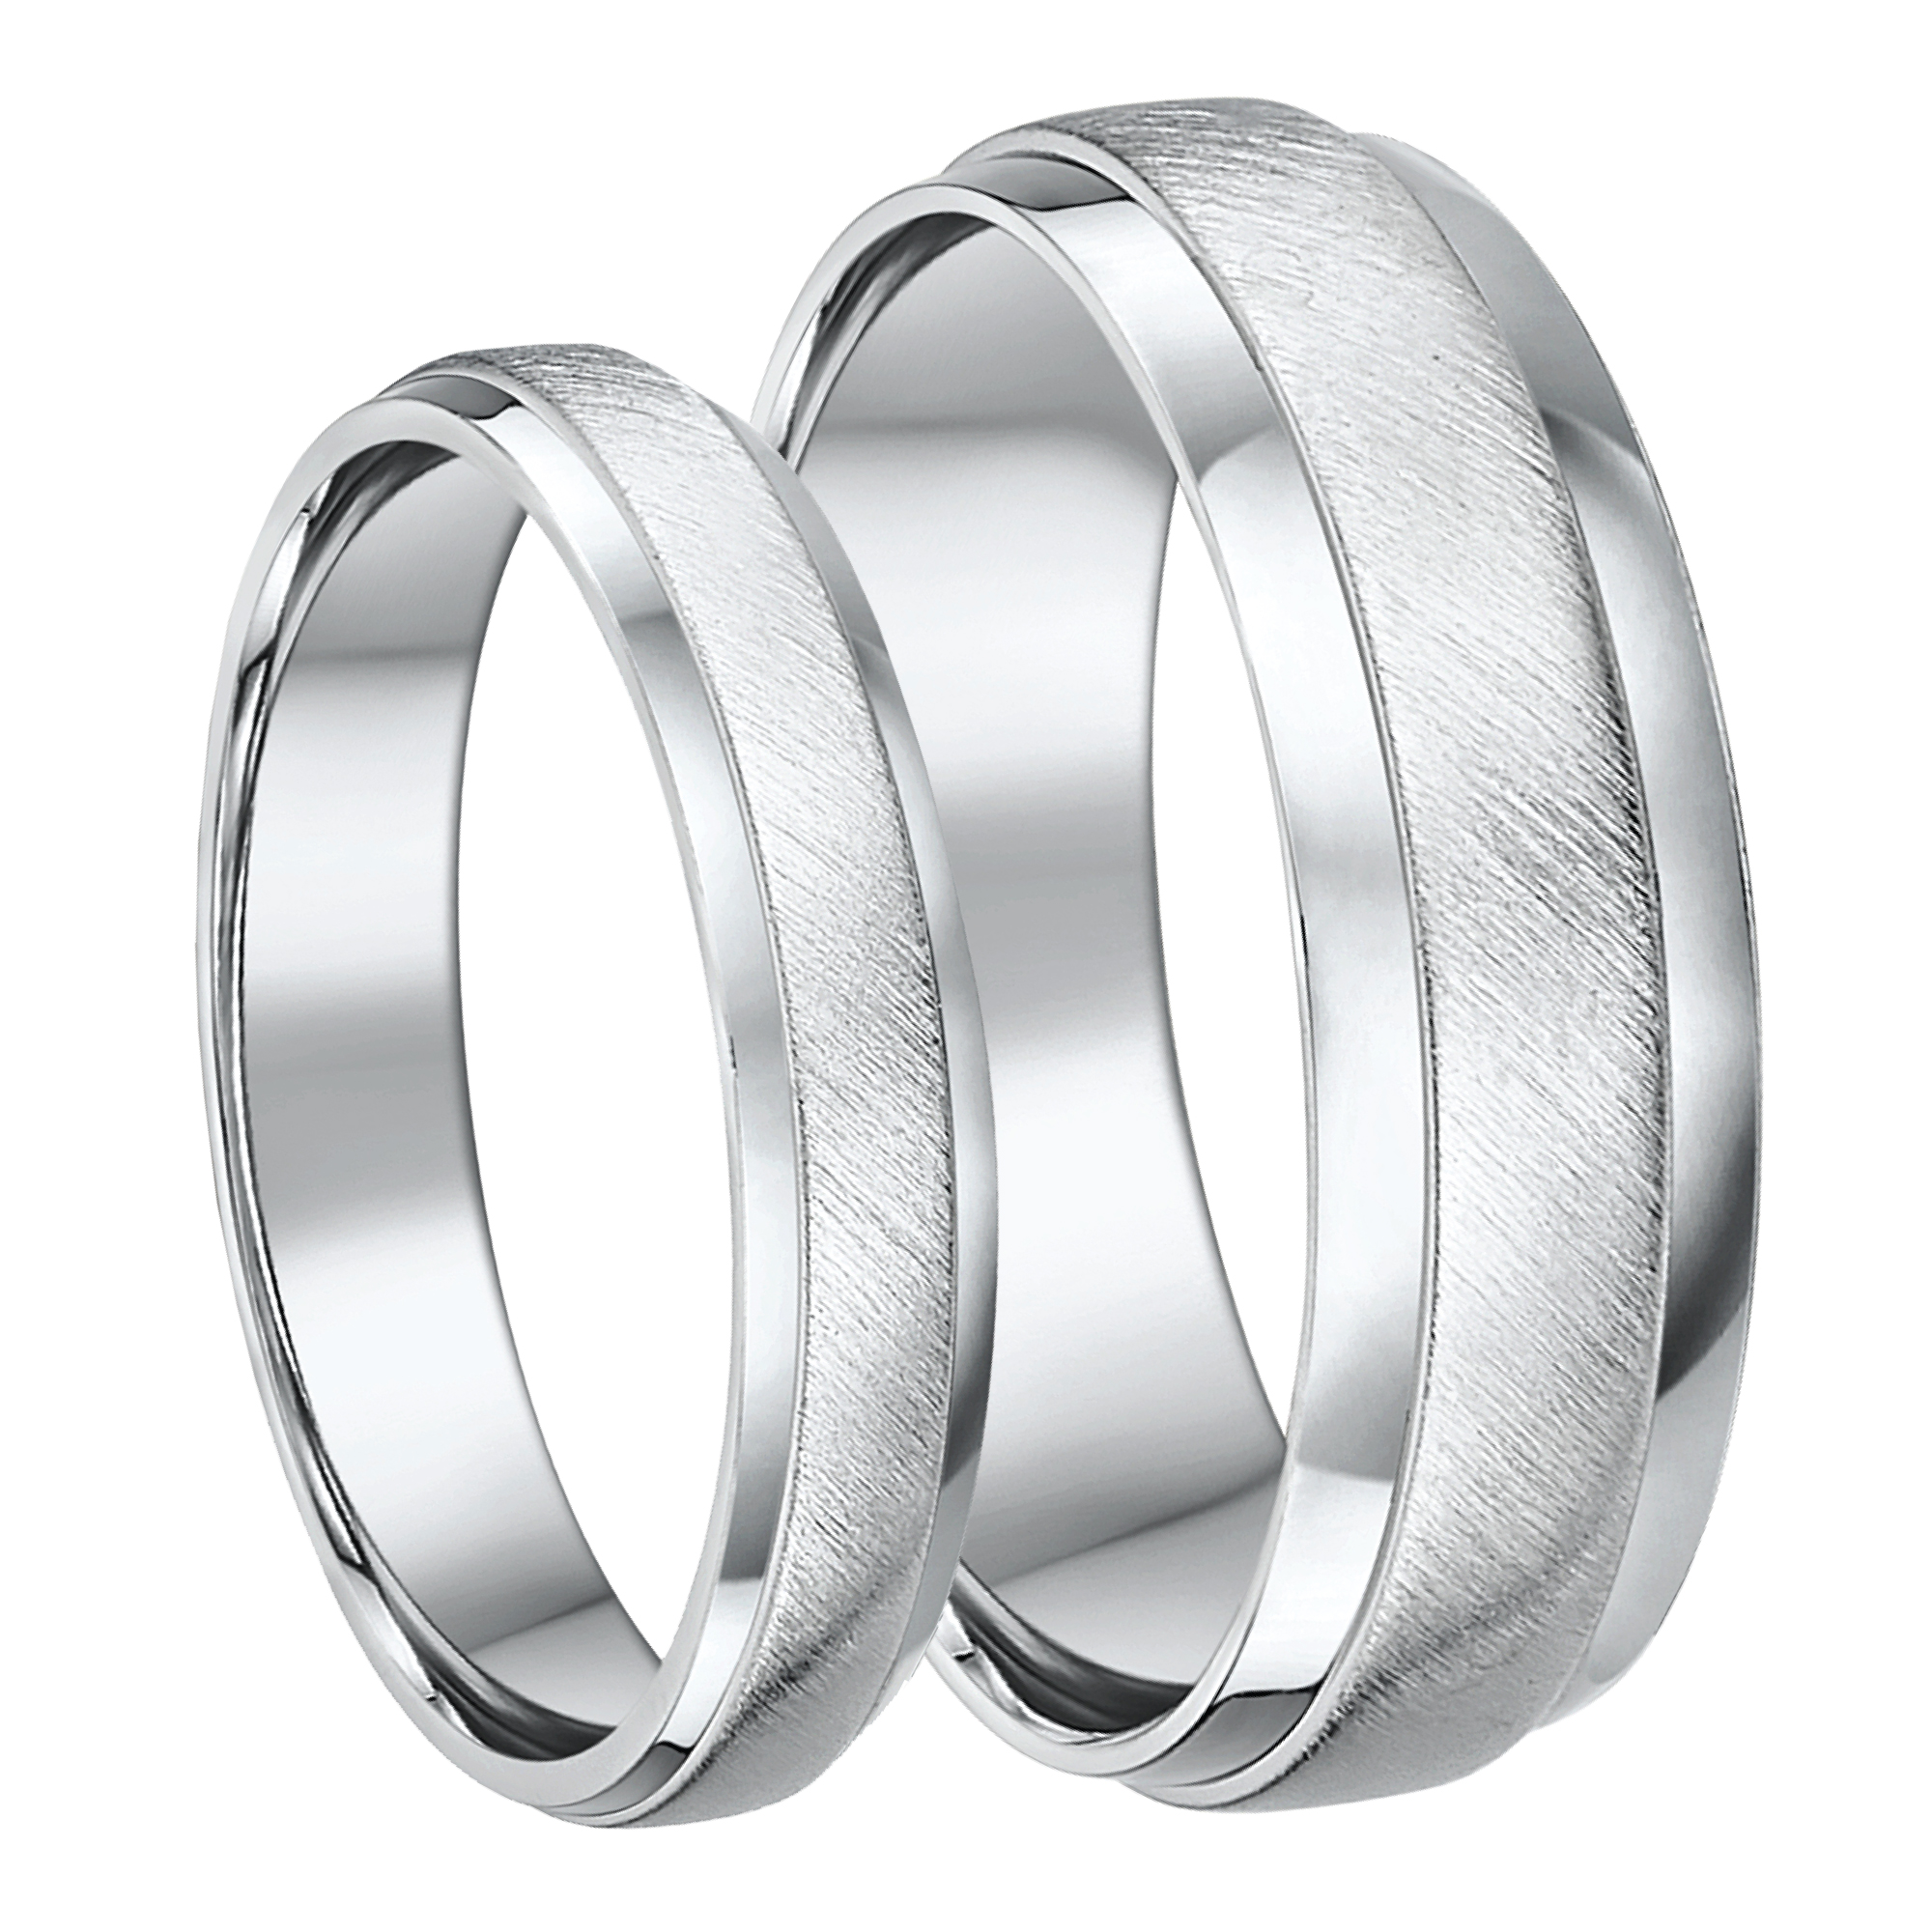 Palladium His & Hers 4&6 Matt and Polished D shaped Wedding Ring